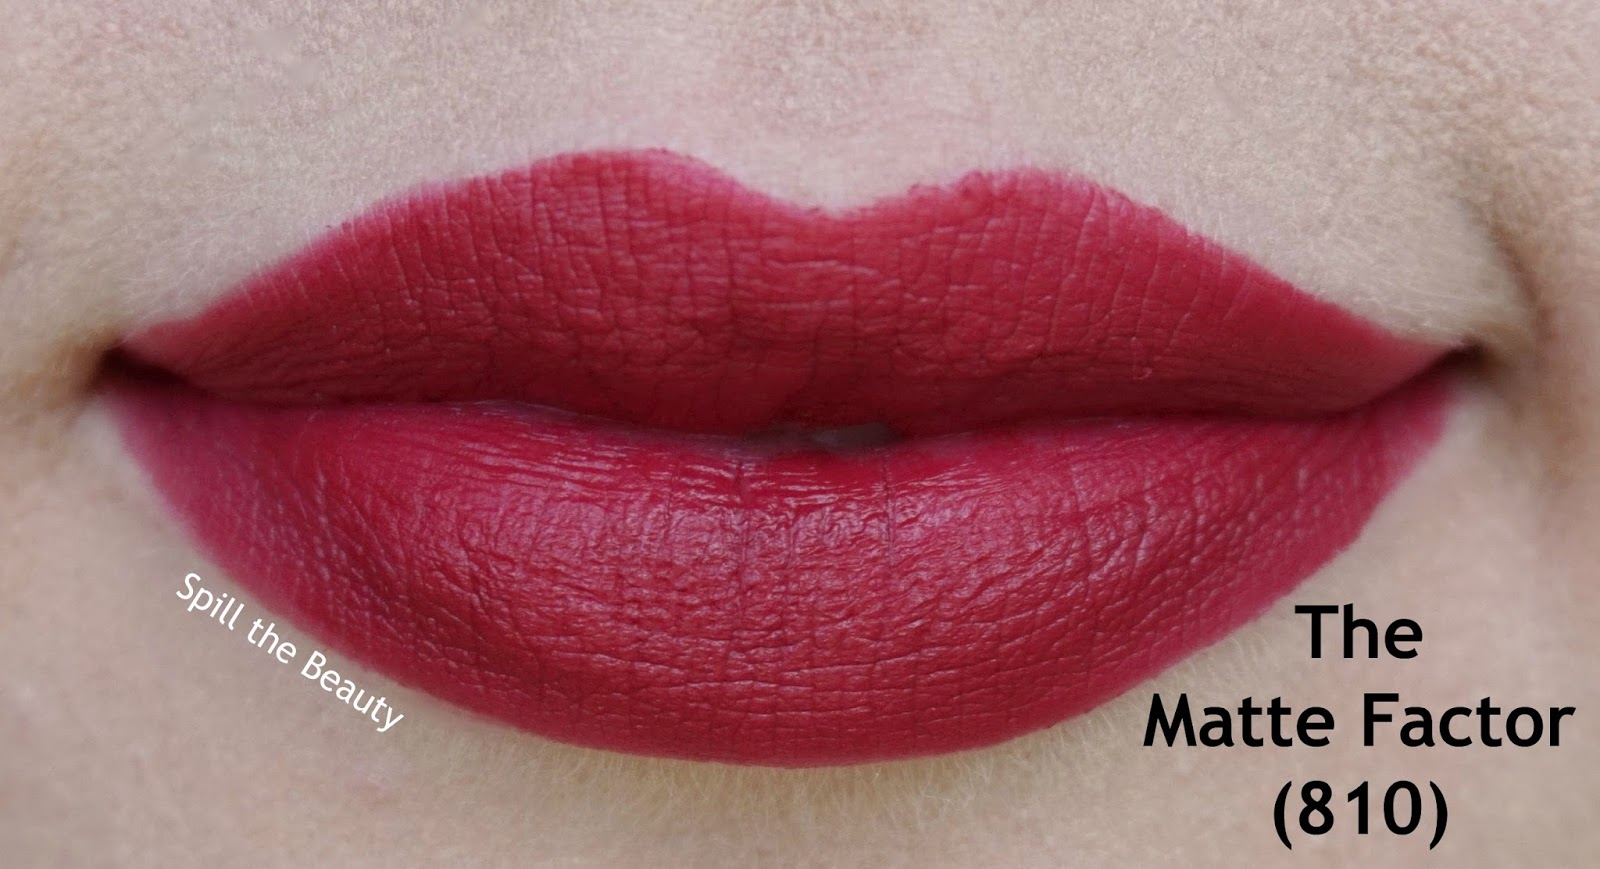 rimmel the only 1 matte lipstick review swatches 810 - the matte factor